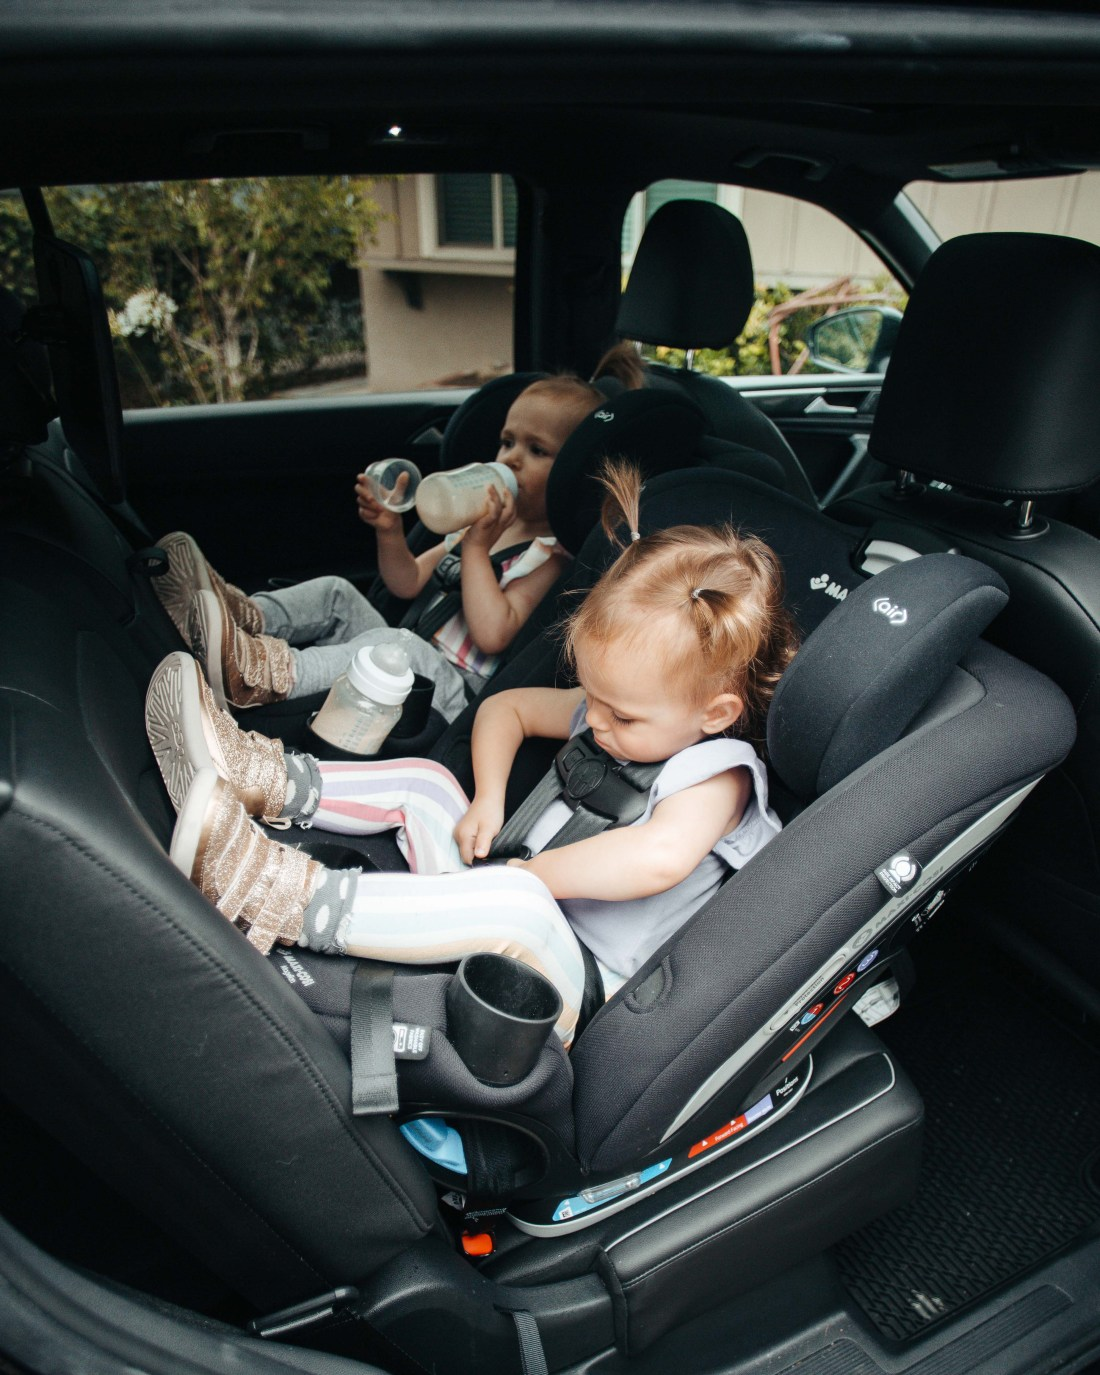 Best Convertible Car Seats - Maxi Cosi Magellan 5-in-1